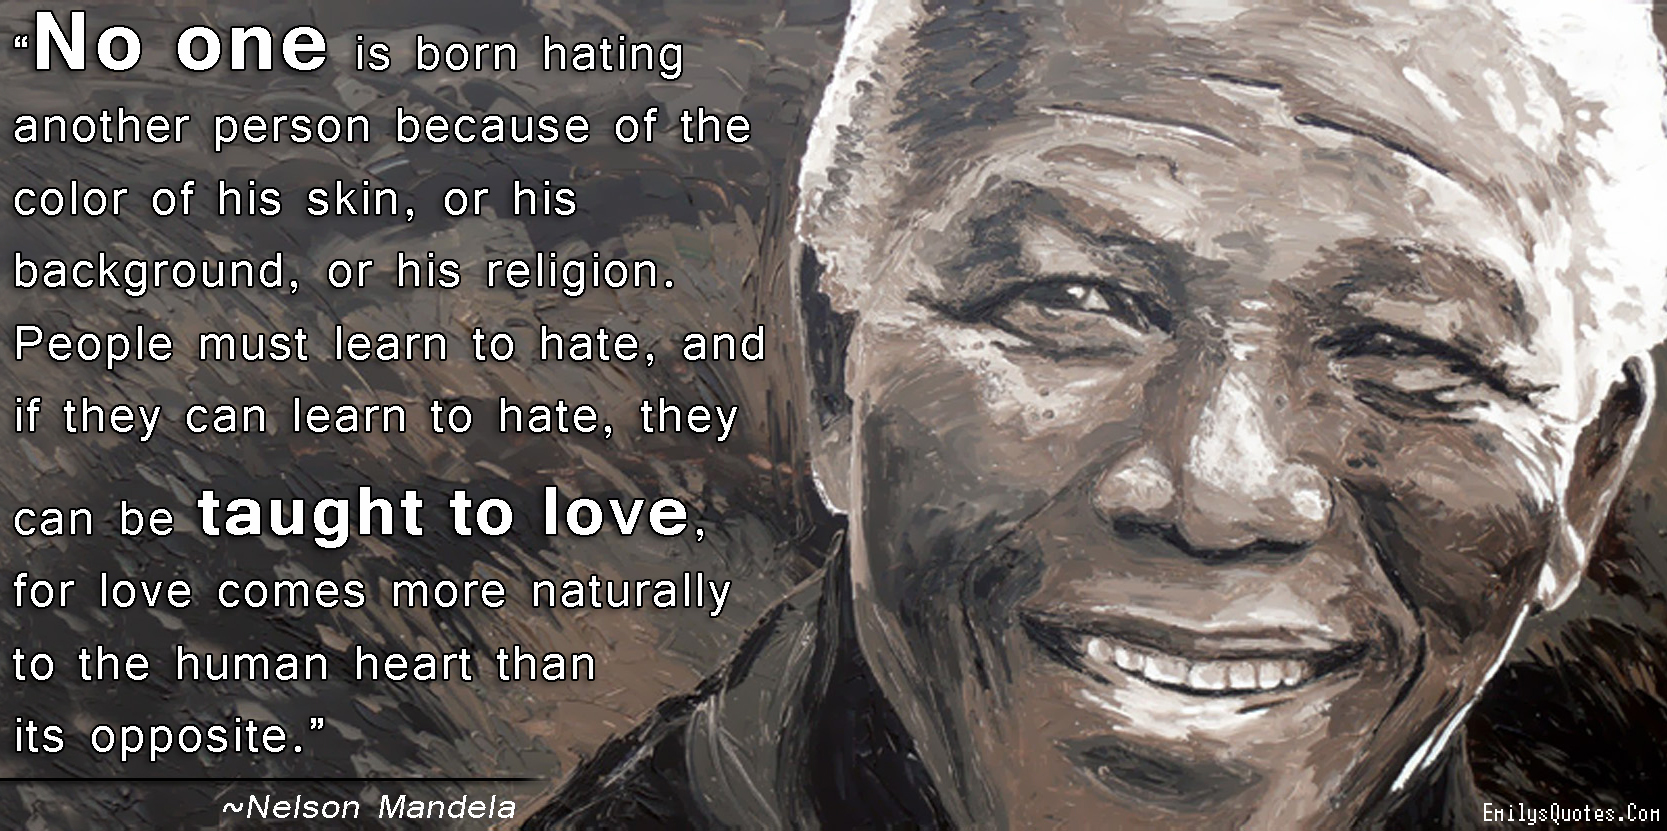 Mandela Quotes About Love No One Is Born Hating Another Person Because Of The Color Of His